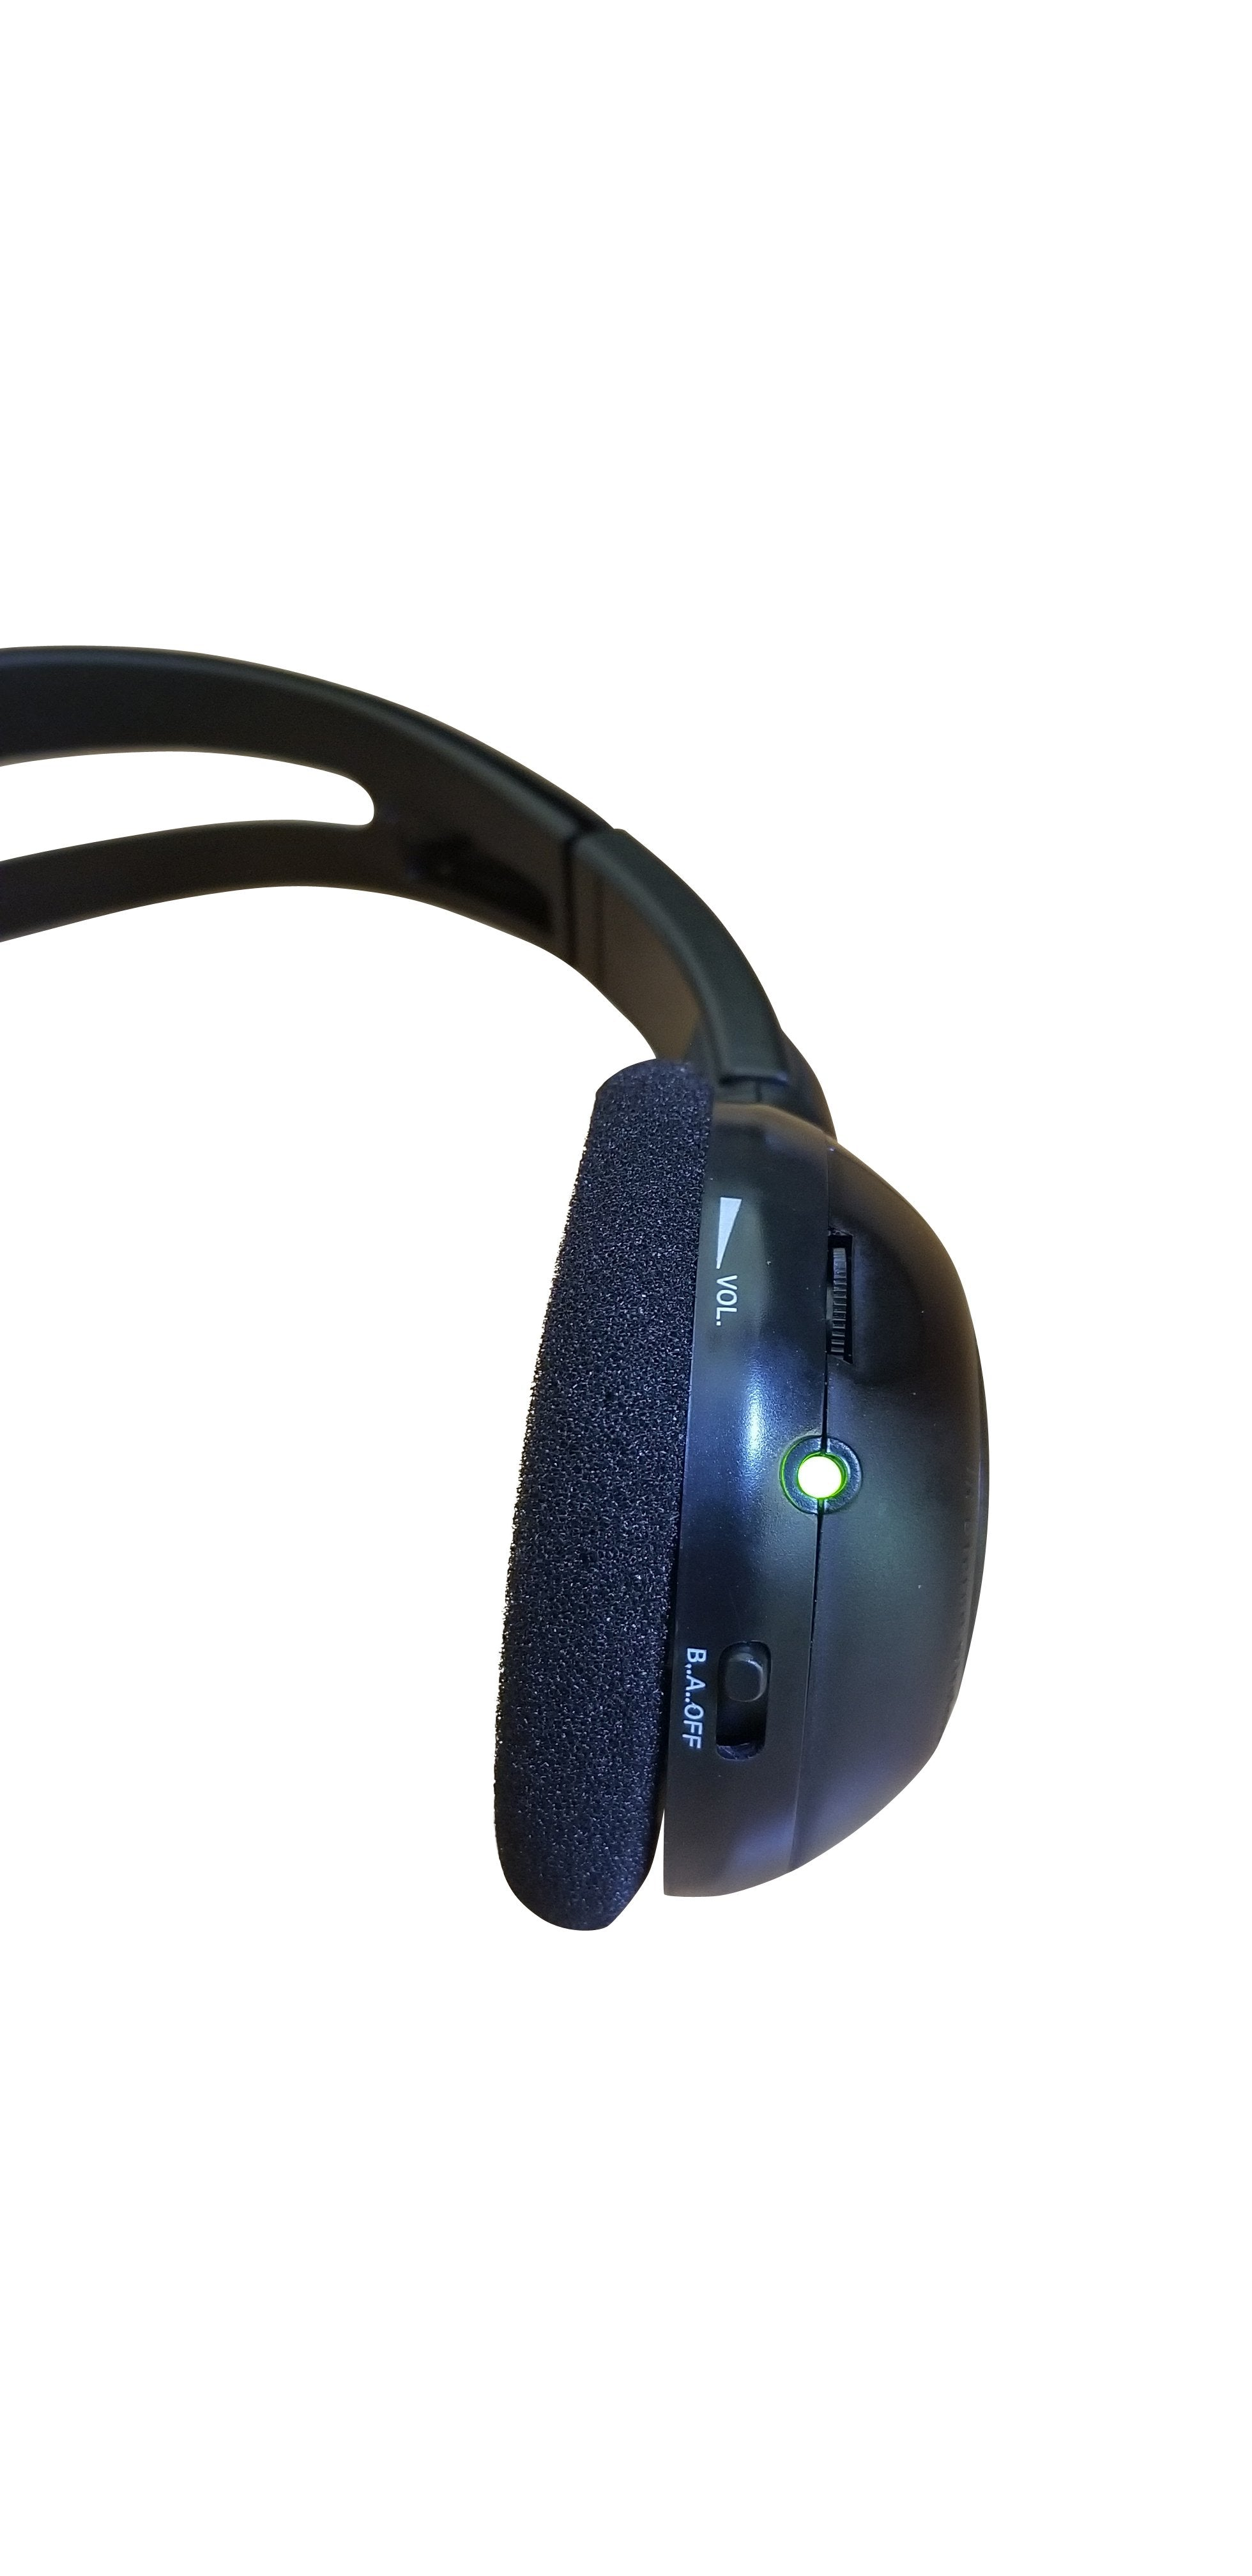 2010 Lincoln Navigator Wireless DVD Headphone